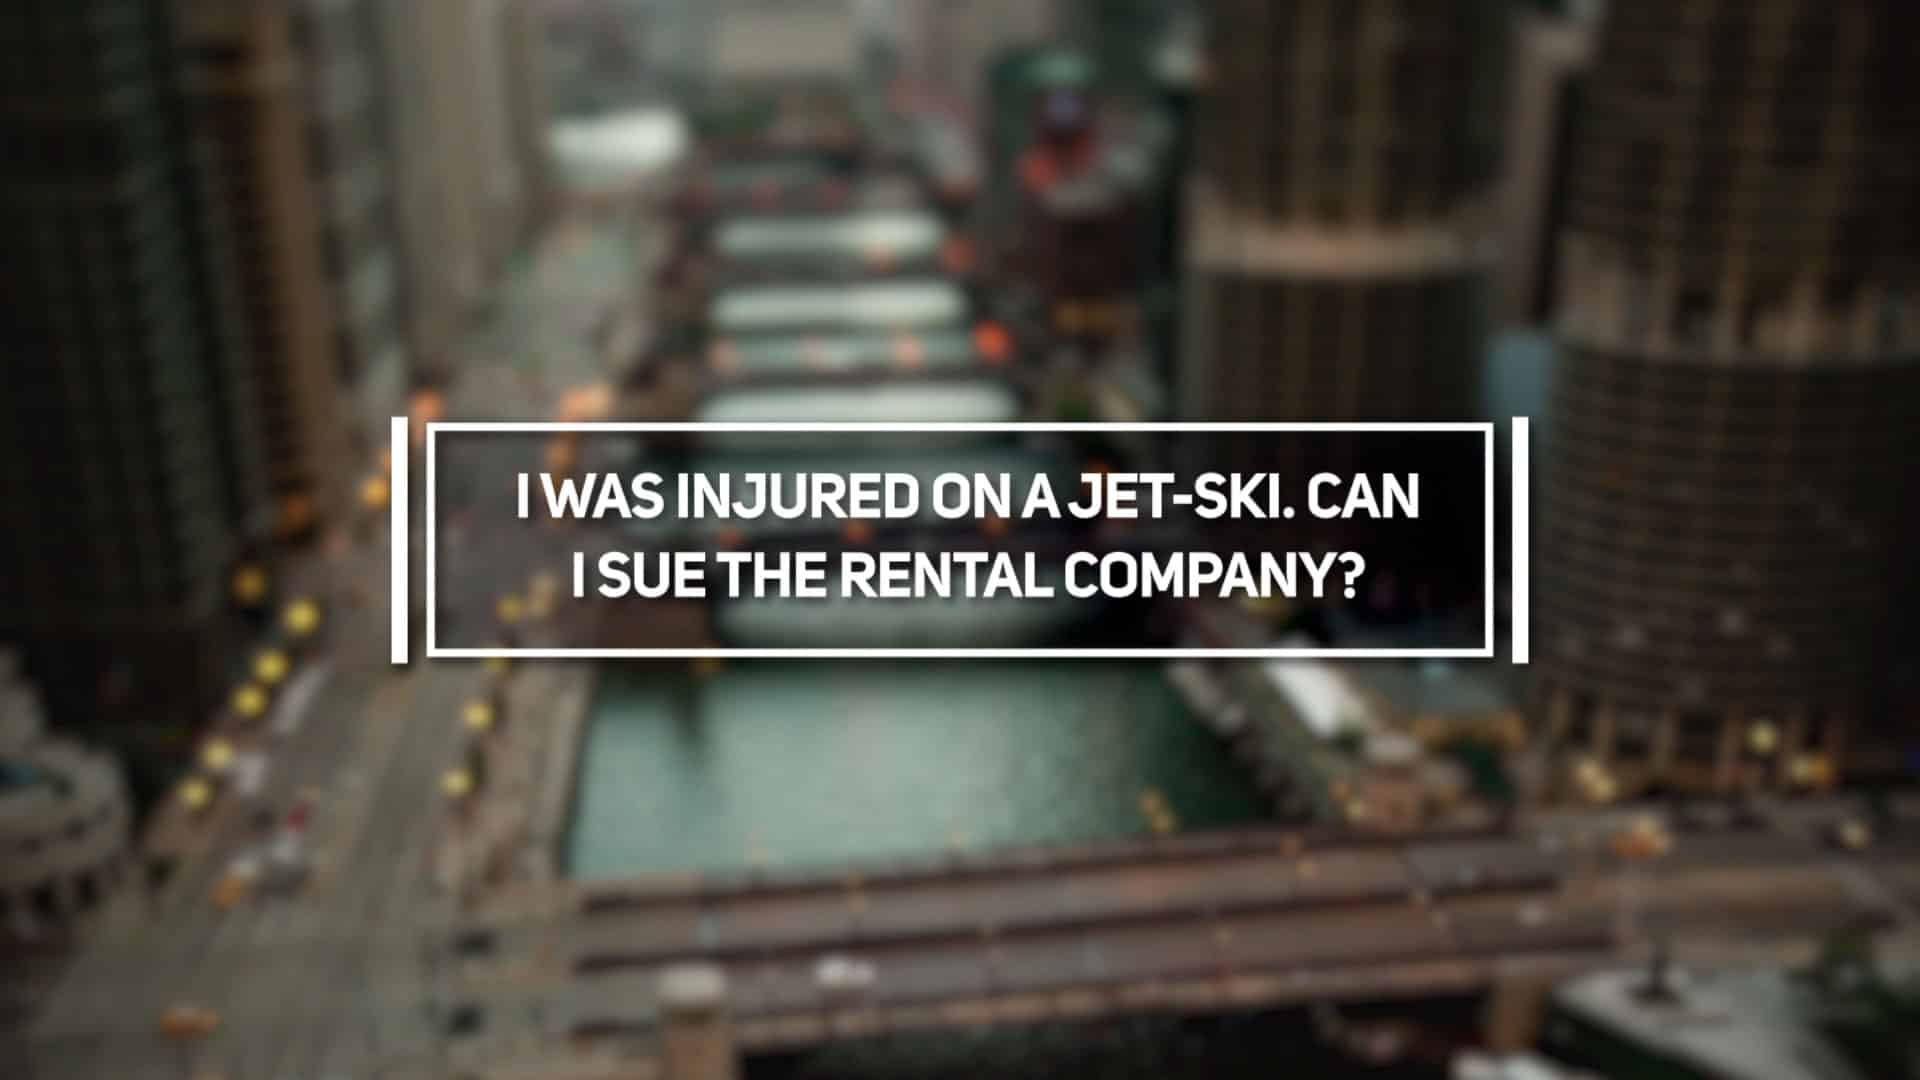 I was Injured on a Jet-Ski. Can I Sue the Rental Company?